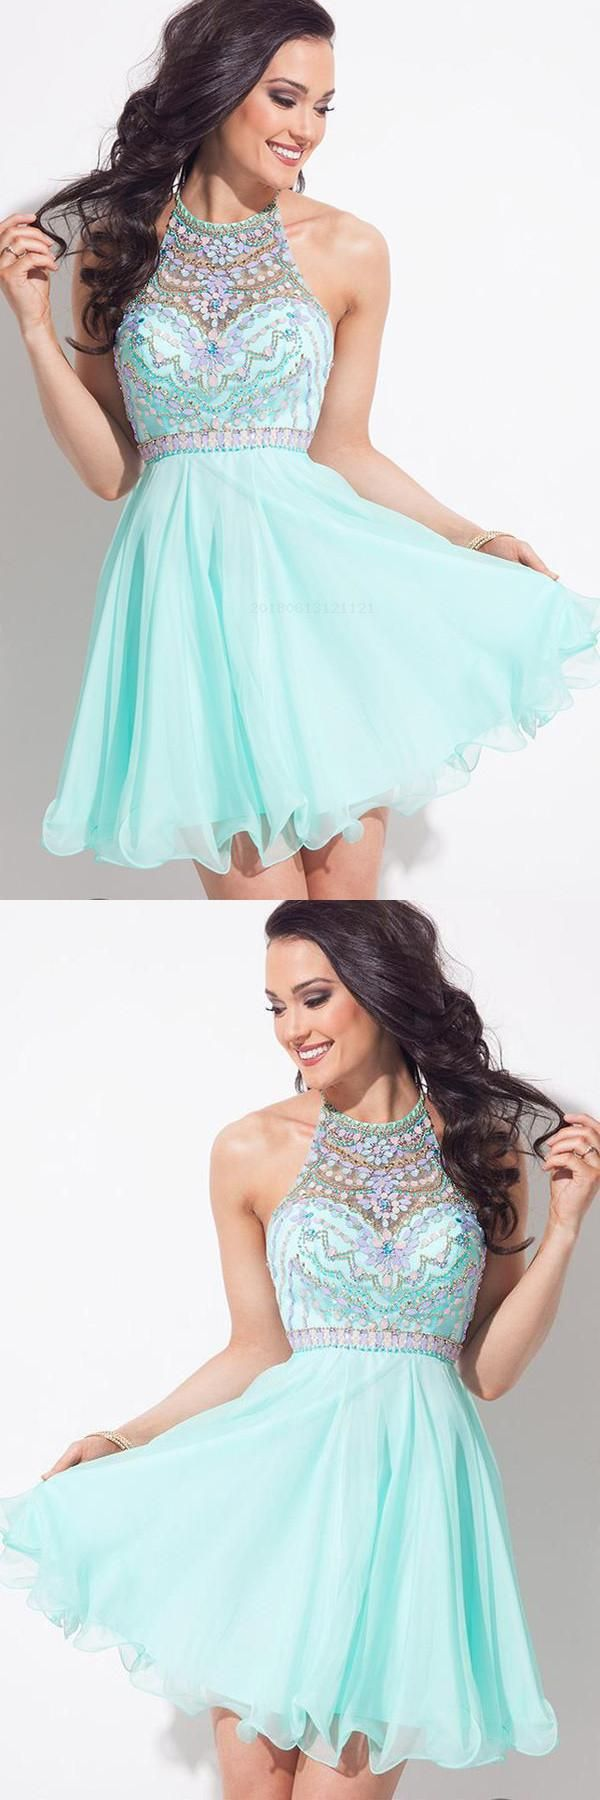 Short prom dress homecoming dresses for cheap prom dresses